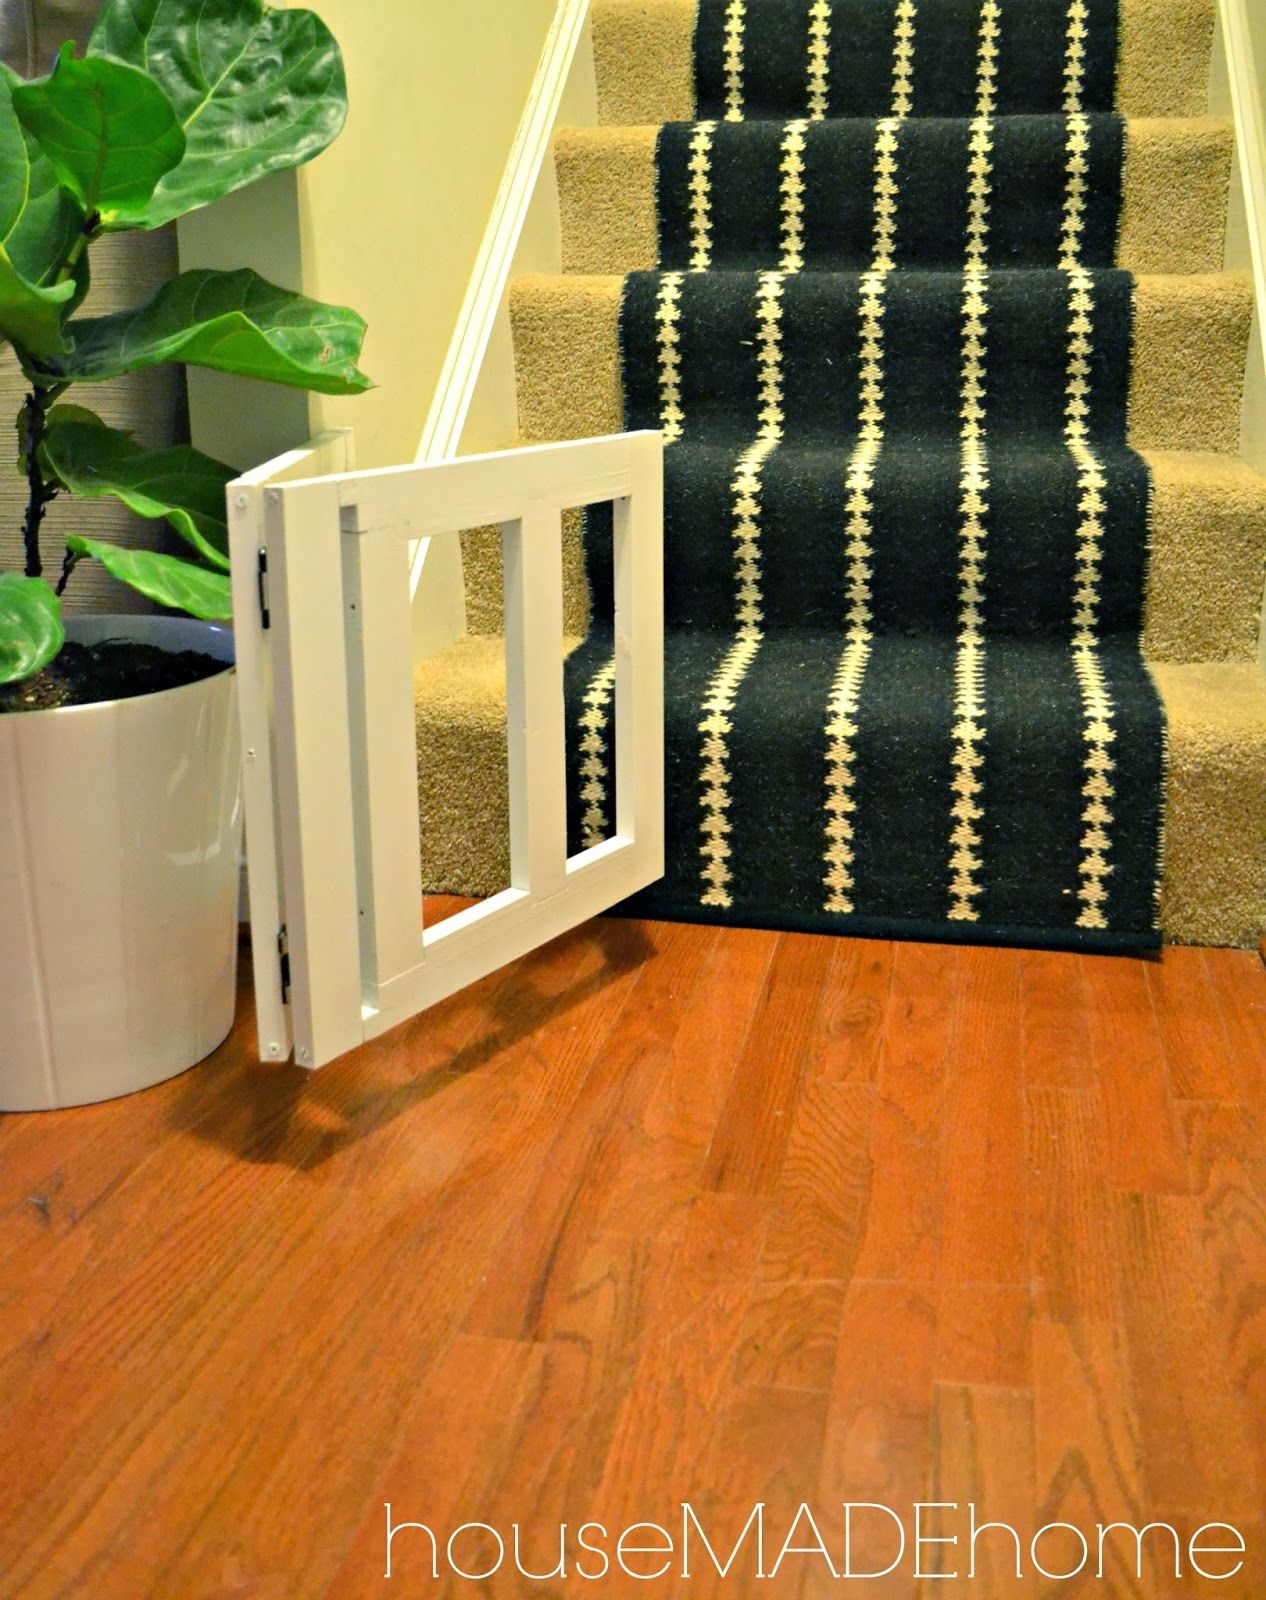 House Made Home Diy Dog Gate From A Bench A Tutorial